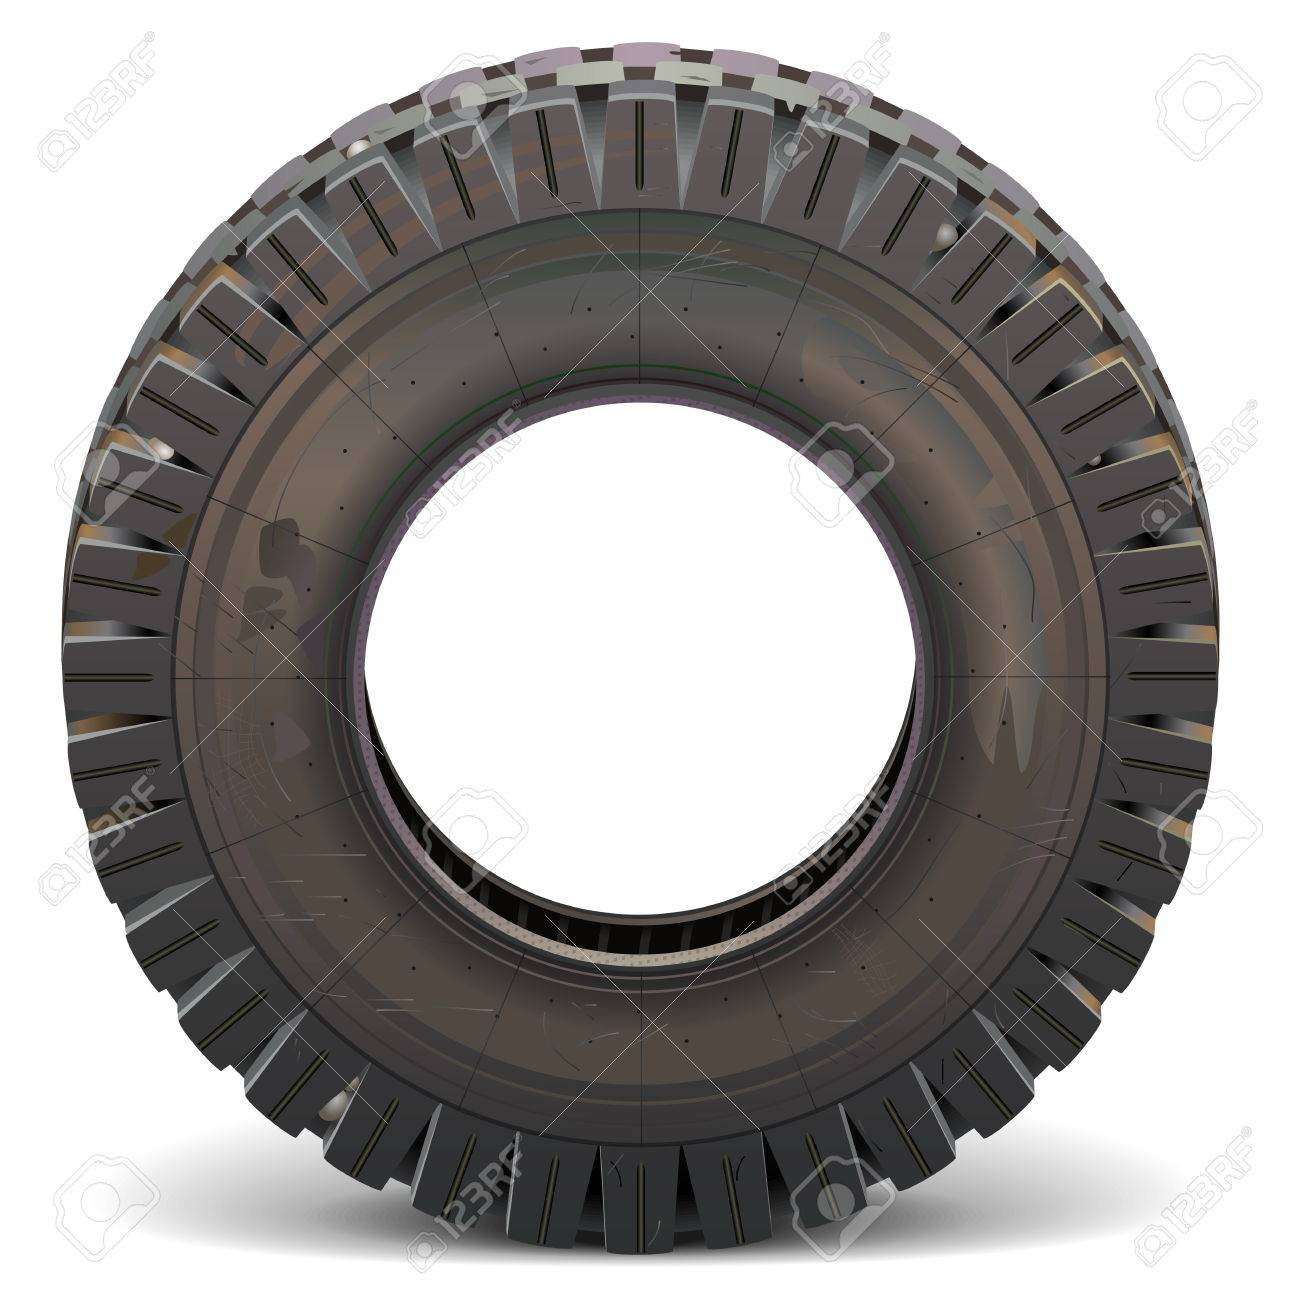 Vector Old Truck Tire isolated on white background - 43178929